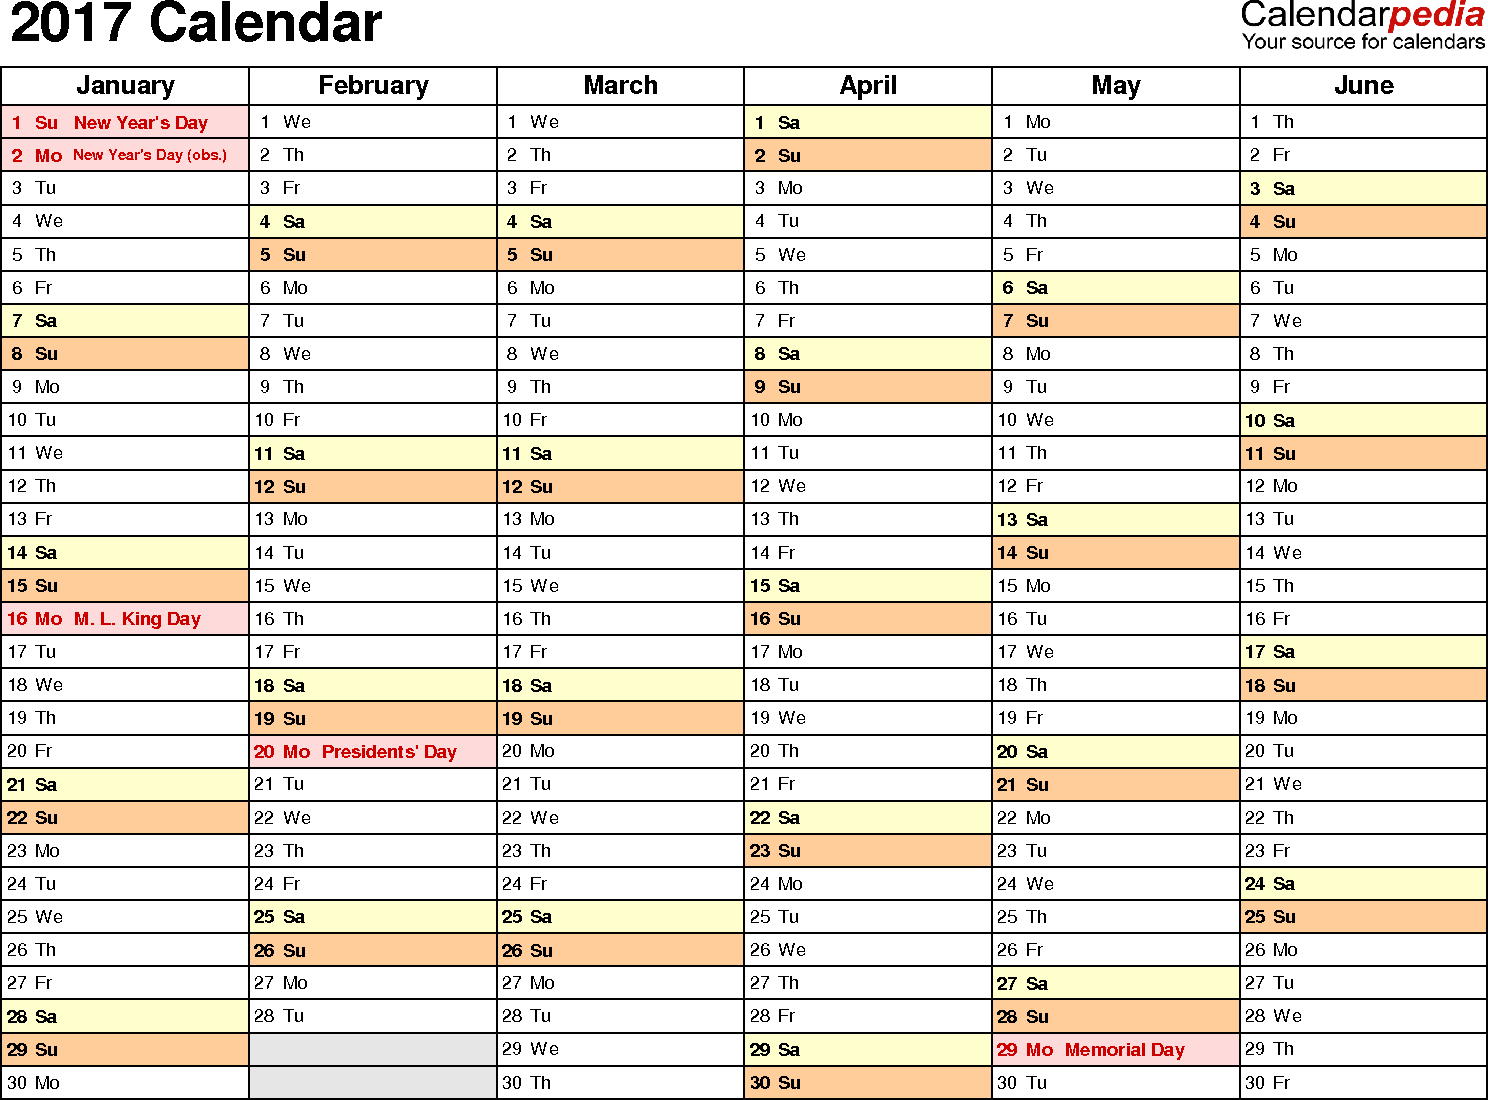 Ediblewildsus  Inspiring  Calendar  Download  Free Printable Excel Templates Xls With Engaging Template   Calendar For Excel Months Horizontally  Pages Landscape Orientation With Charming Wedding Guest Template Excel Also Excel Distinct Values In Addition Vba Excel Delete Row And E On Excel As Well As How Do You Print Labels From Excel Additionally Pdf To Excel Sheet Converter Online From Calendarpediacom With Ediblewildsus  Engaging  Calendar  Download  Free Printable Excel Templates Xls With Charming Template   Calendar For Excel Months Horizontally  Pages Landscape Orientation And Inspiring Wedding Guest Template Excel Also Excel Distinct Values In Addition Vba Excel Delete Row From Calendarpediacom